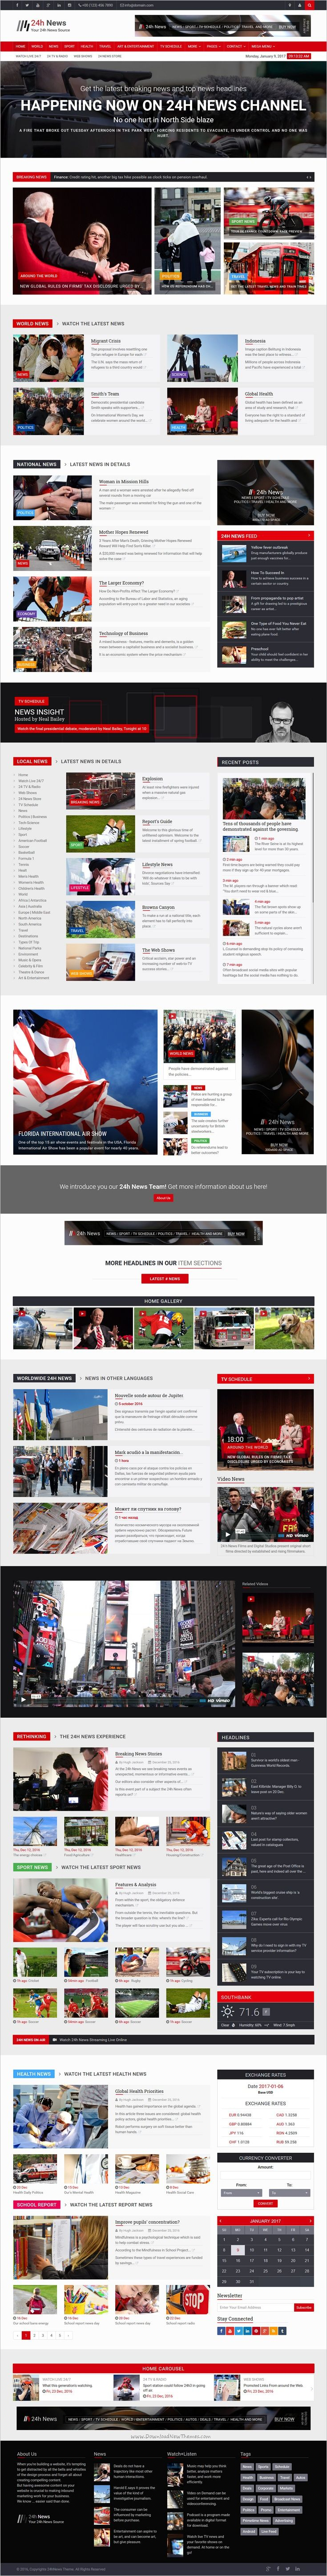 24h News is a professionally design responsive #HTML template for #Broadcast #News #TV Channel, TV News, Newspaper, or News Magazine website download now➩ https://themeforest.net/item/24h-news-broadcast-news-tv-channel-news-magazine-template/18614179?ref=Datasata